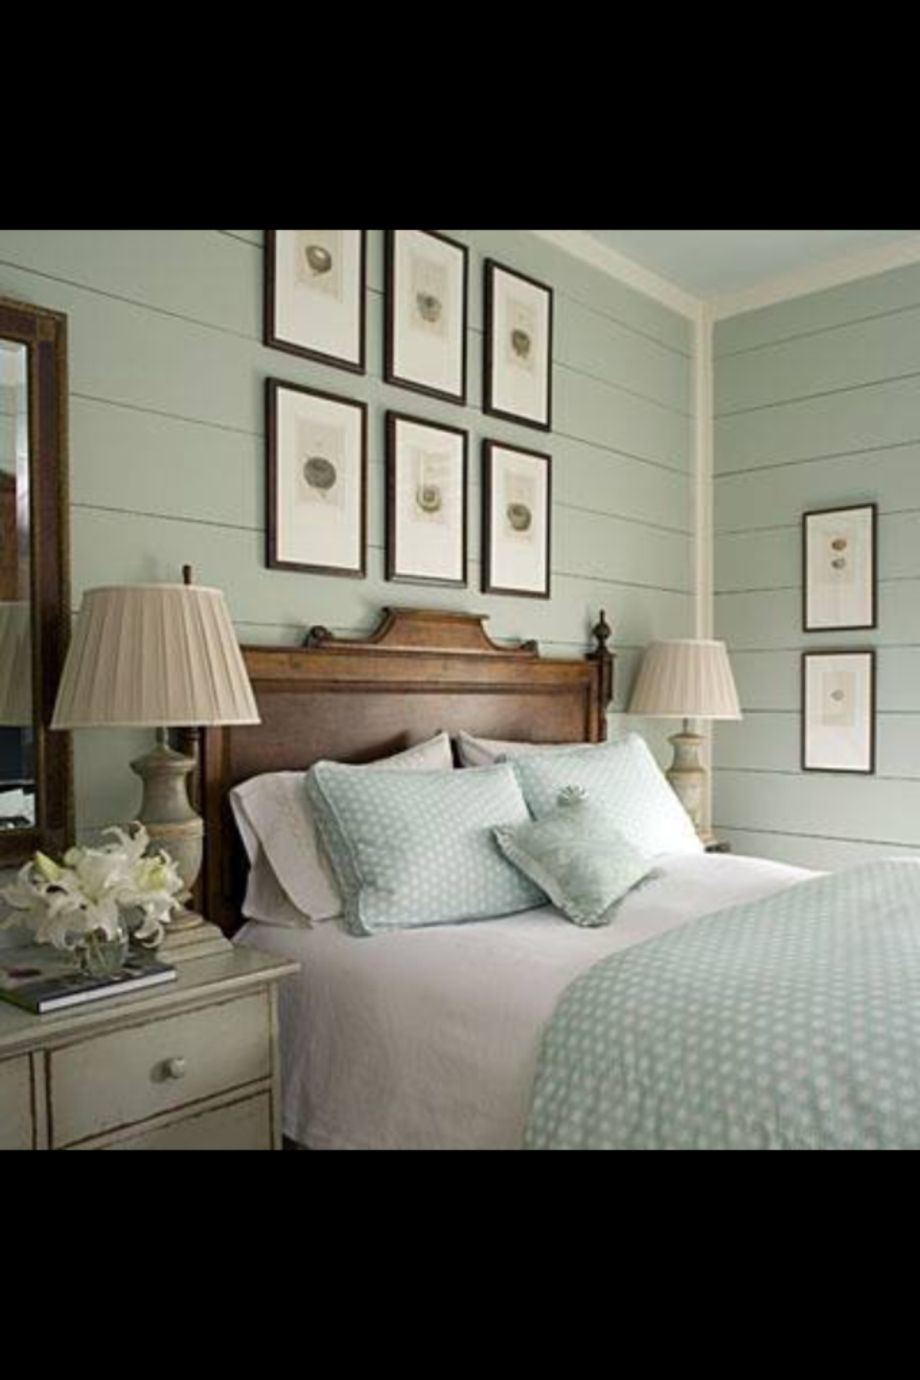 83 Stunning Dream Master Bedroom Decorating Ideas